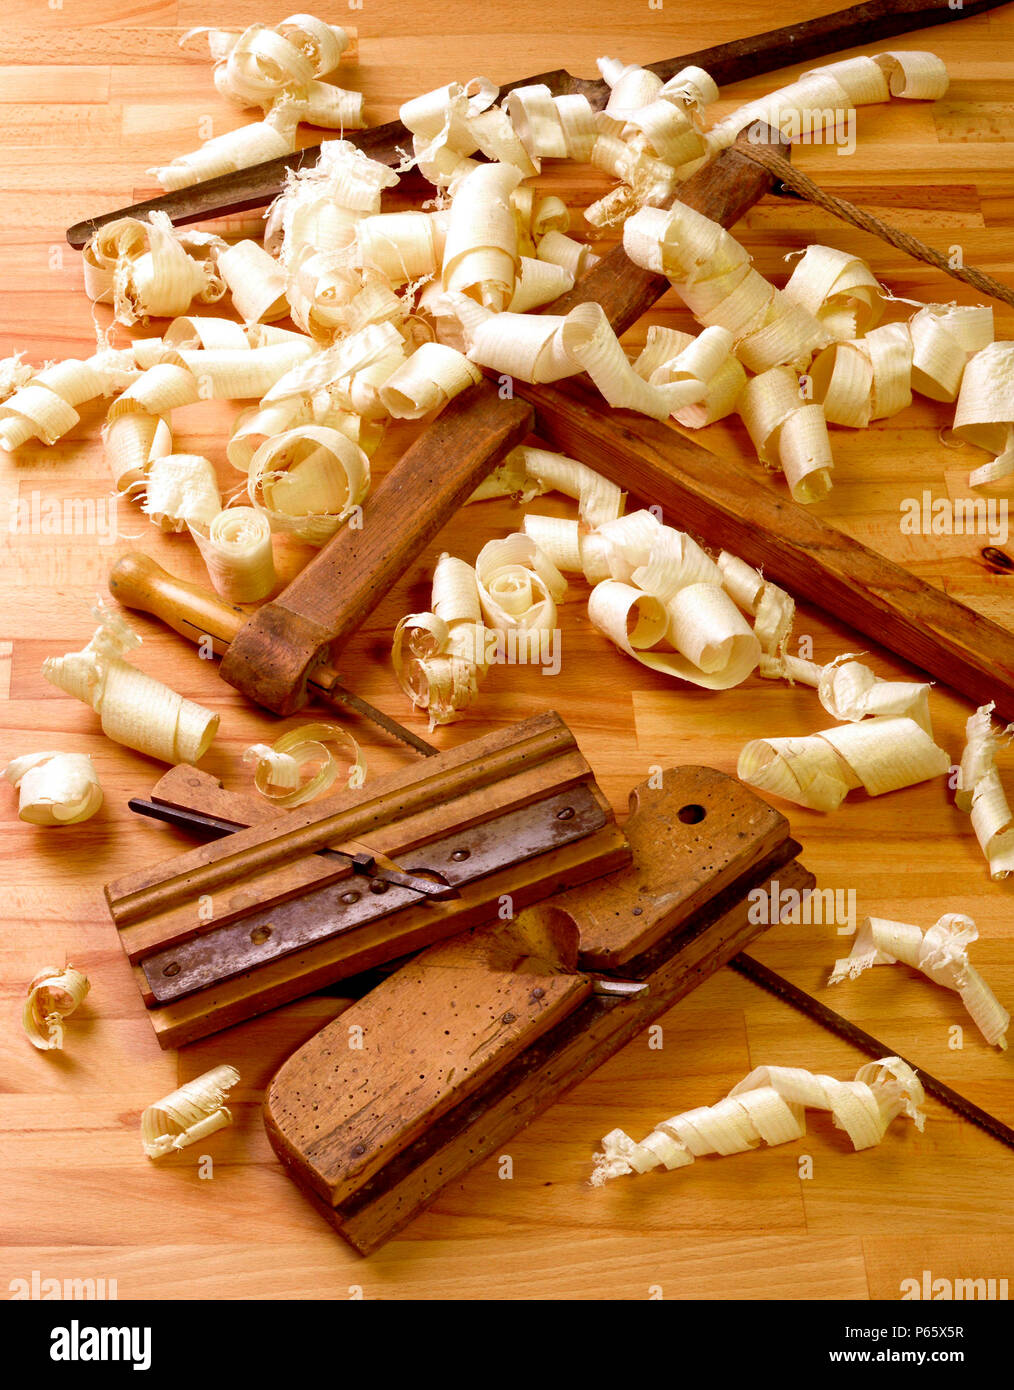 Old Tools Of Cabinet Makers Close Up Stock Photo 210342659 Alamy